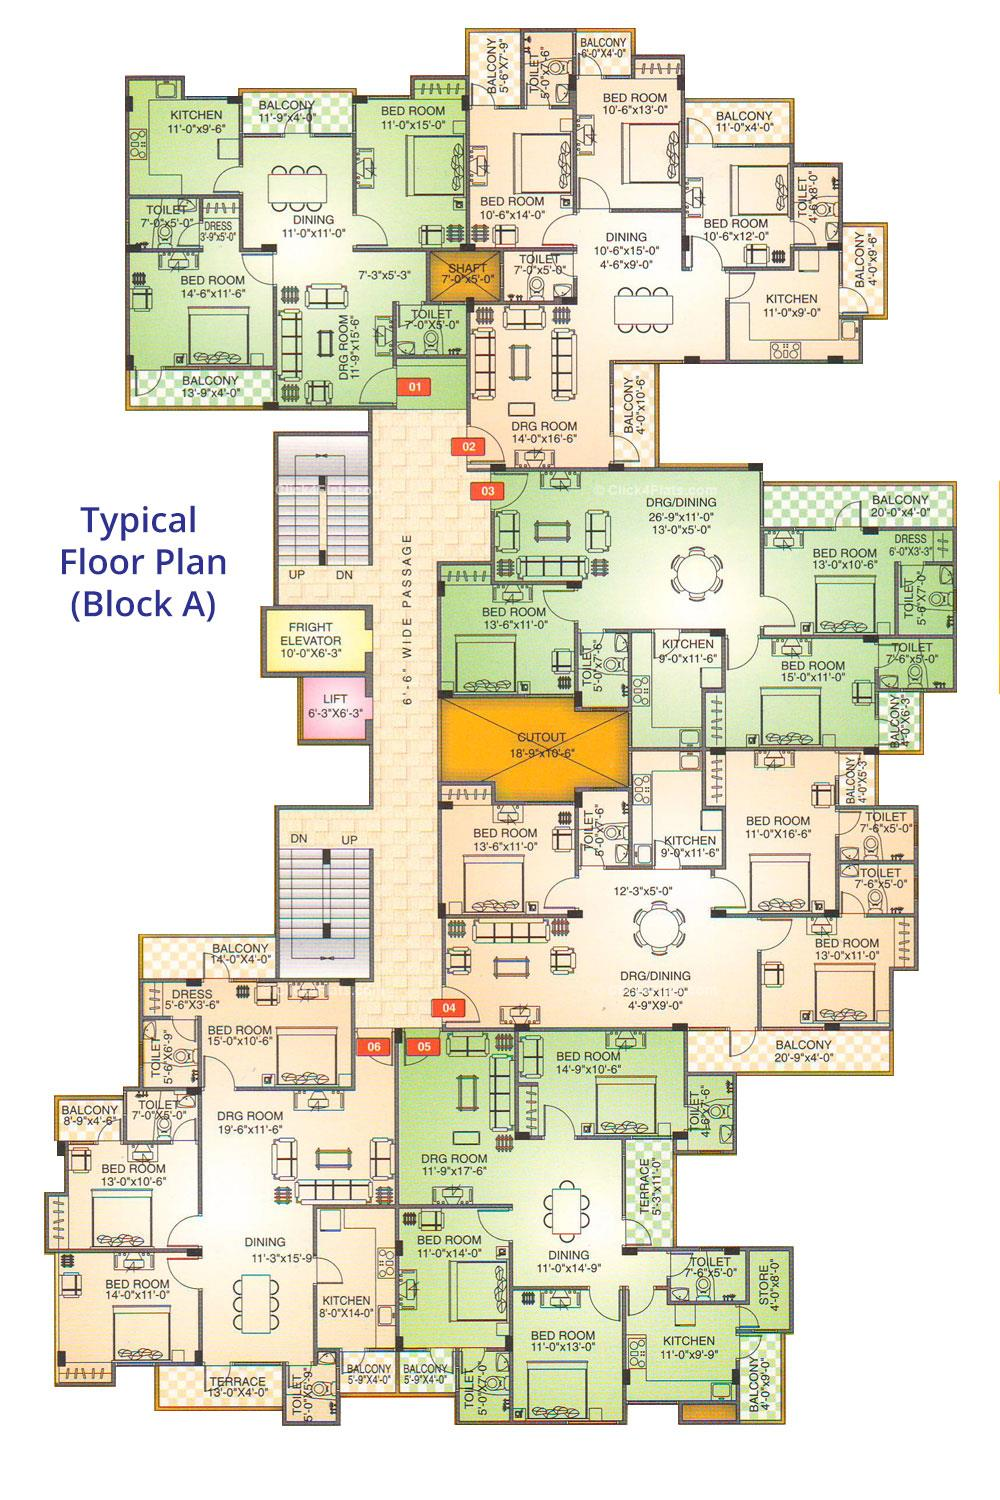 Shivgyan Enclave Typical Floor Plan (Block A)